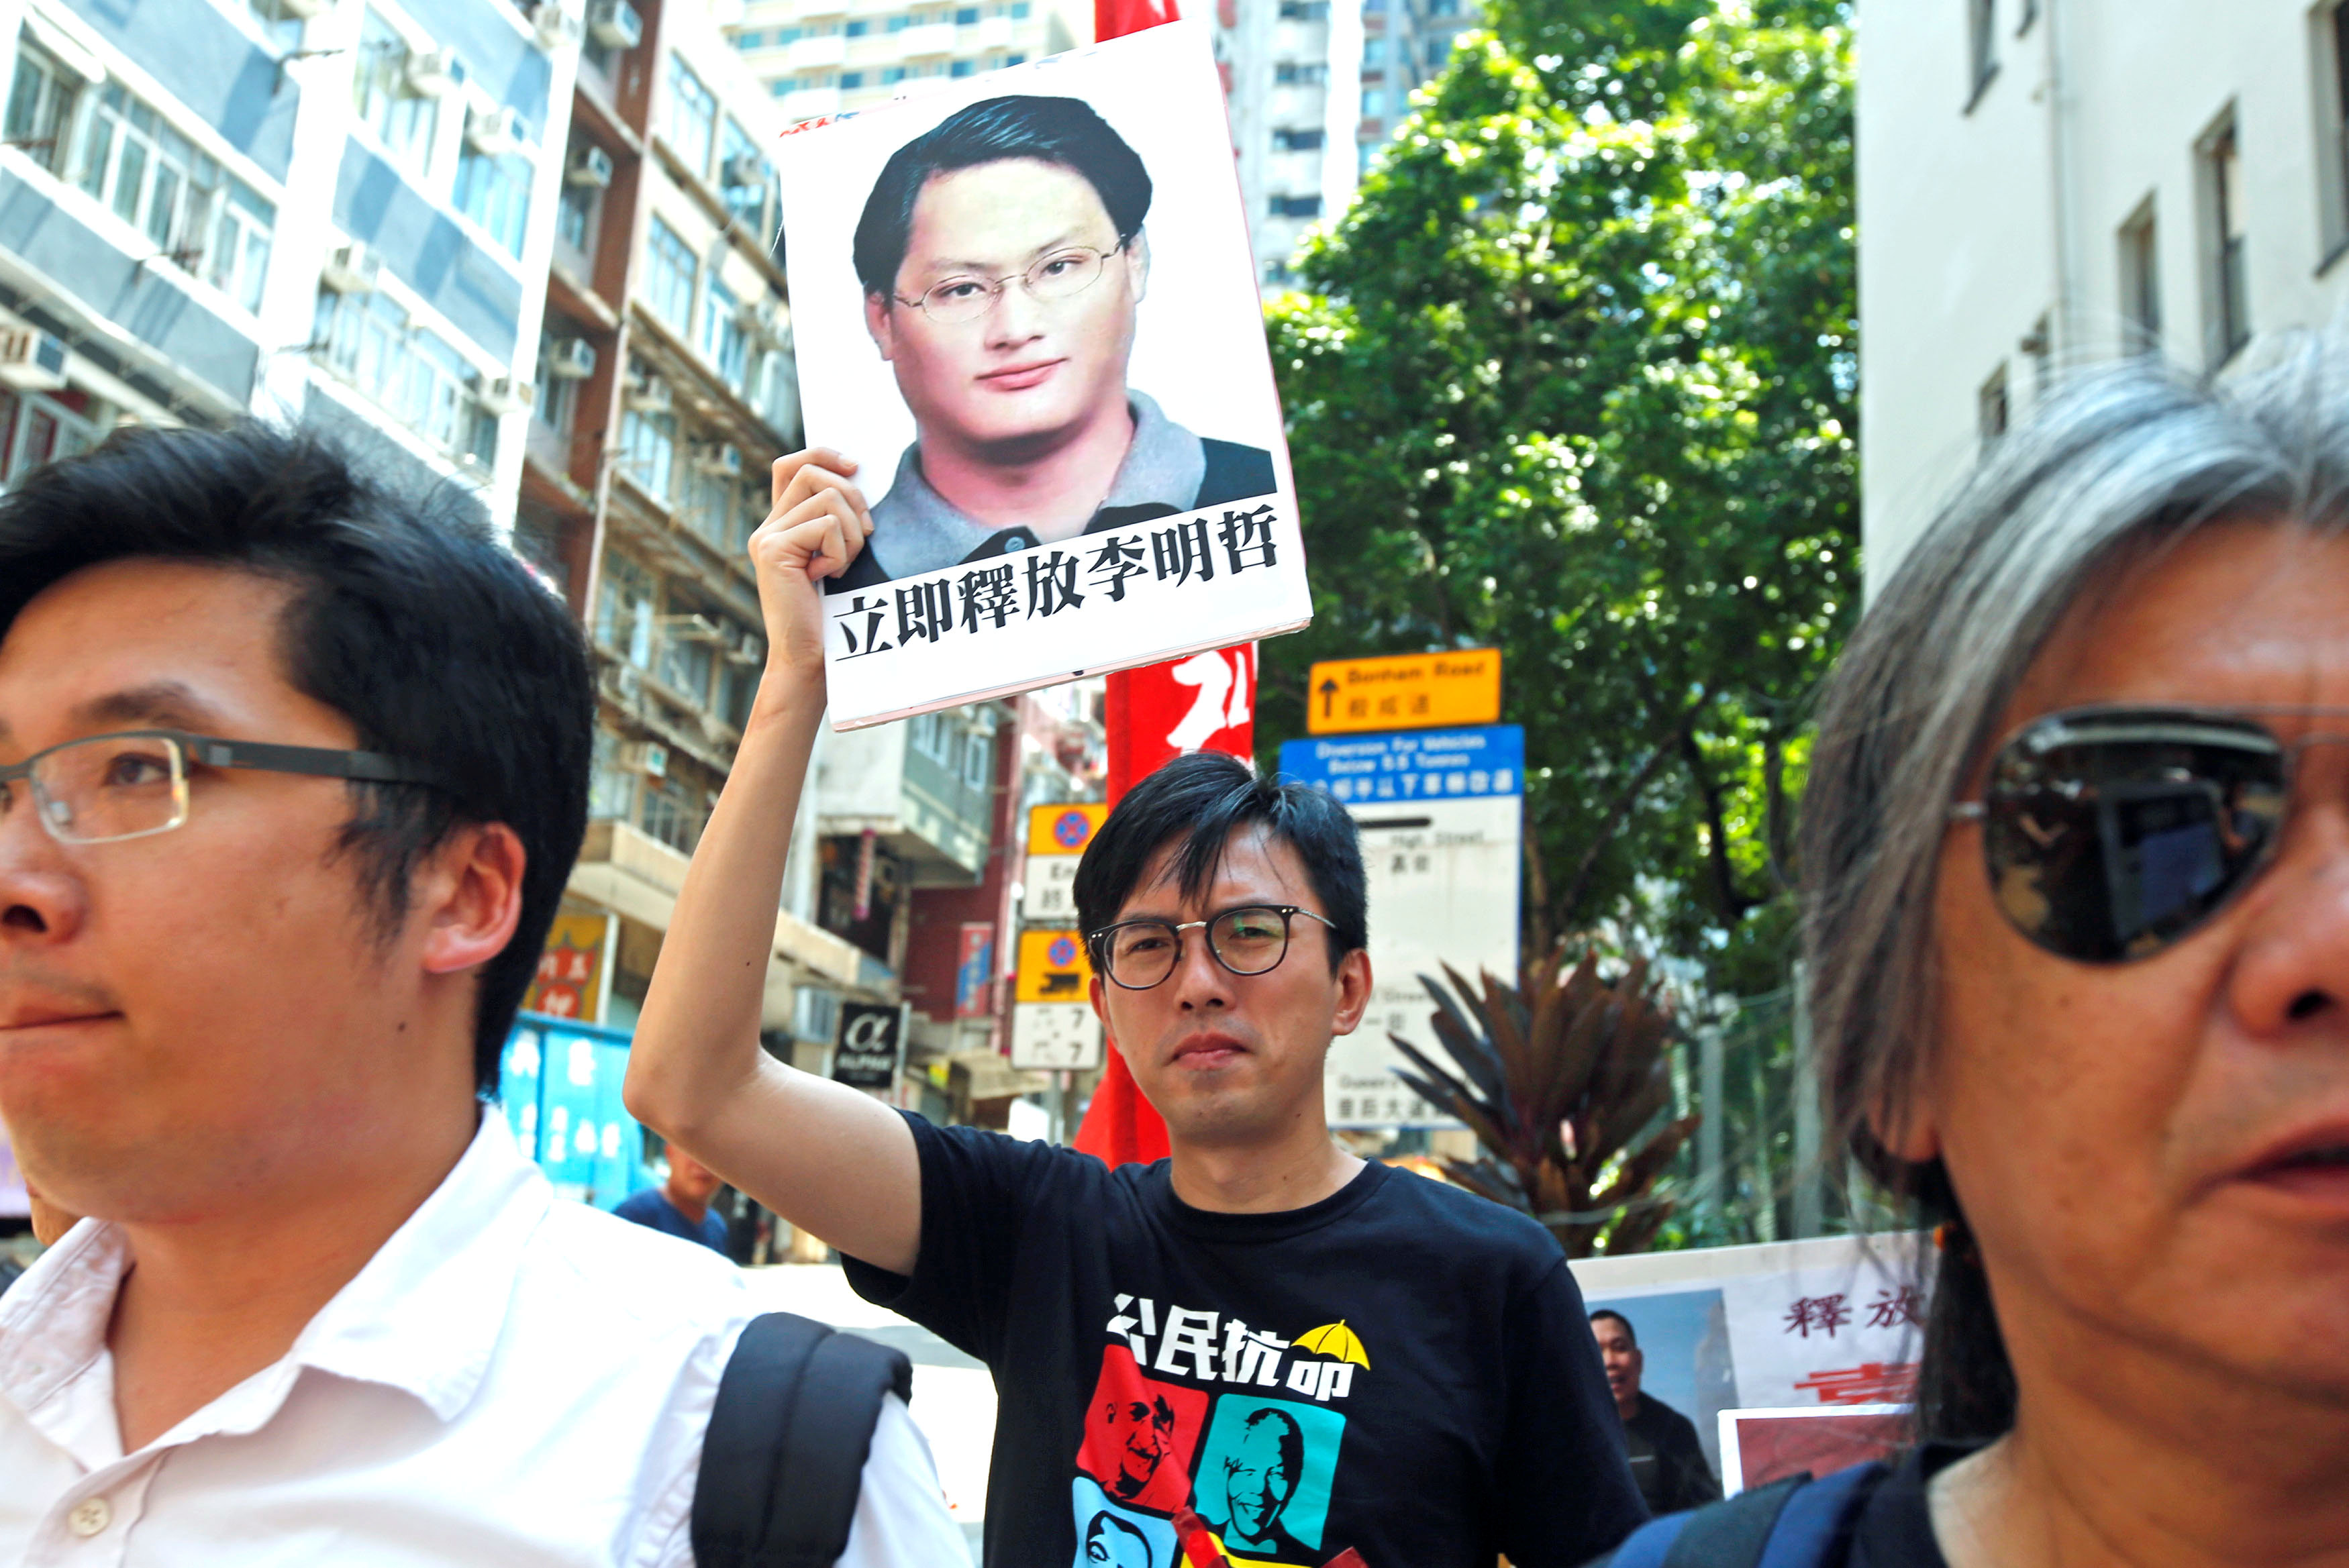 Pro-democracy protesters carry a photo of detained Taiwanese rights activist Lee Ming-Che during a demonstration in Hong Kong, China on Sept. 11, 2017. (REUTERS/Bobby Yip)